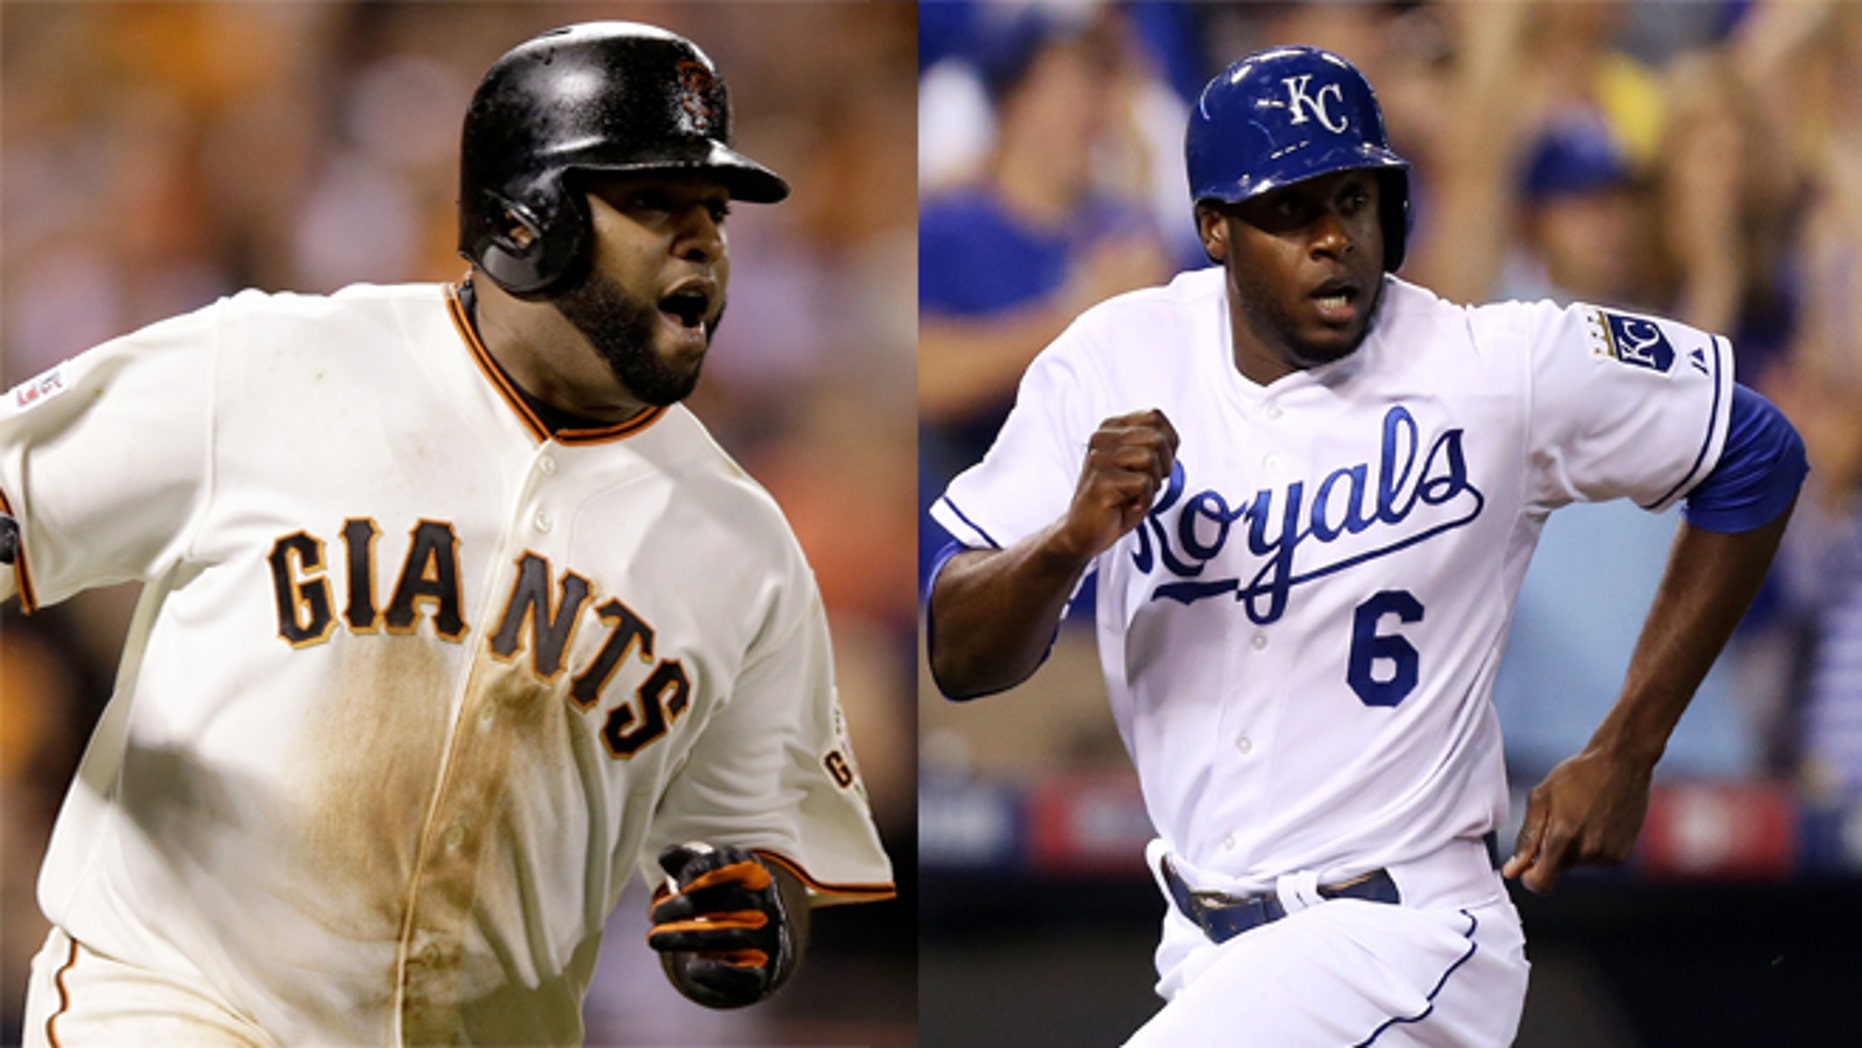 A photo composite of the San Francisco Giants' Pablo Sandoval (L) and the Kansas City Royals' Lorenzo Cain (R).